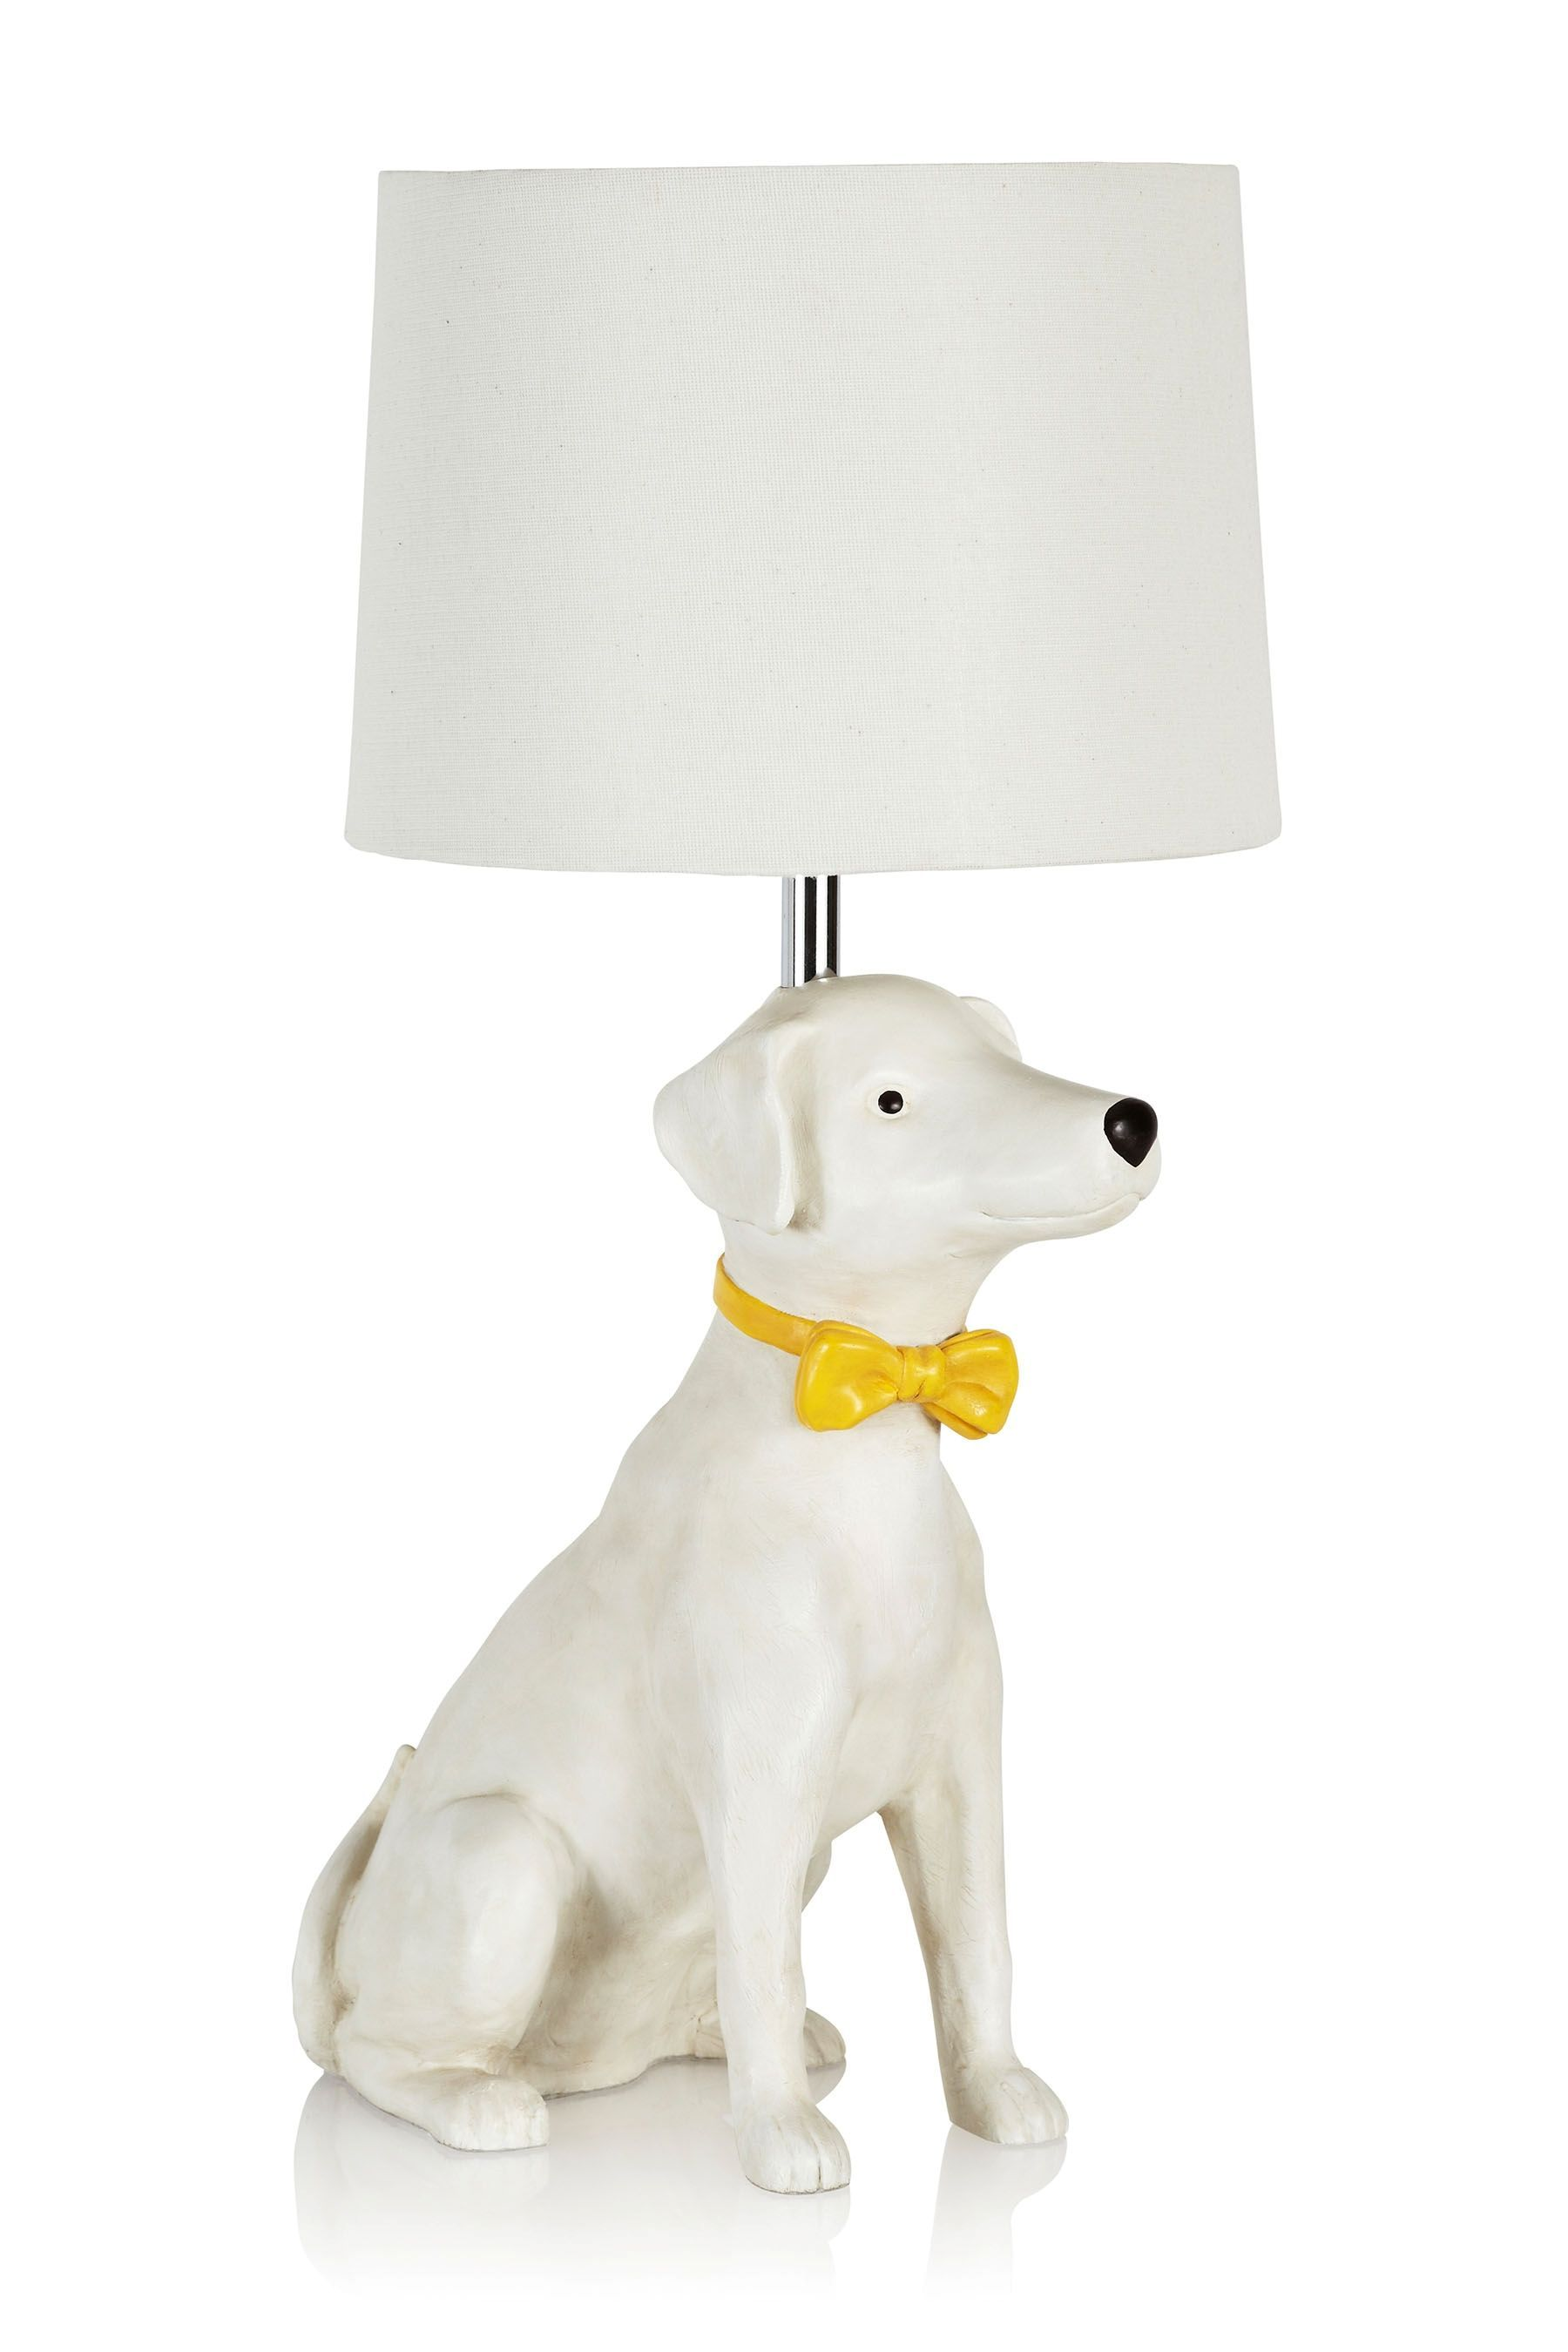 Buy Bow Tie Dog Lamp from the Next UK online shop | Homeware ...